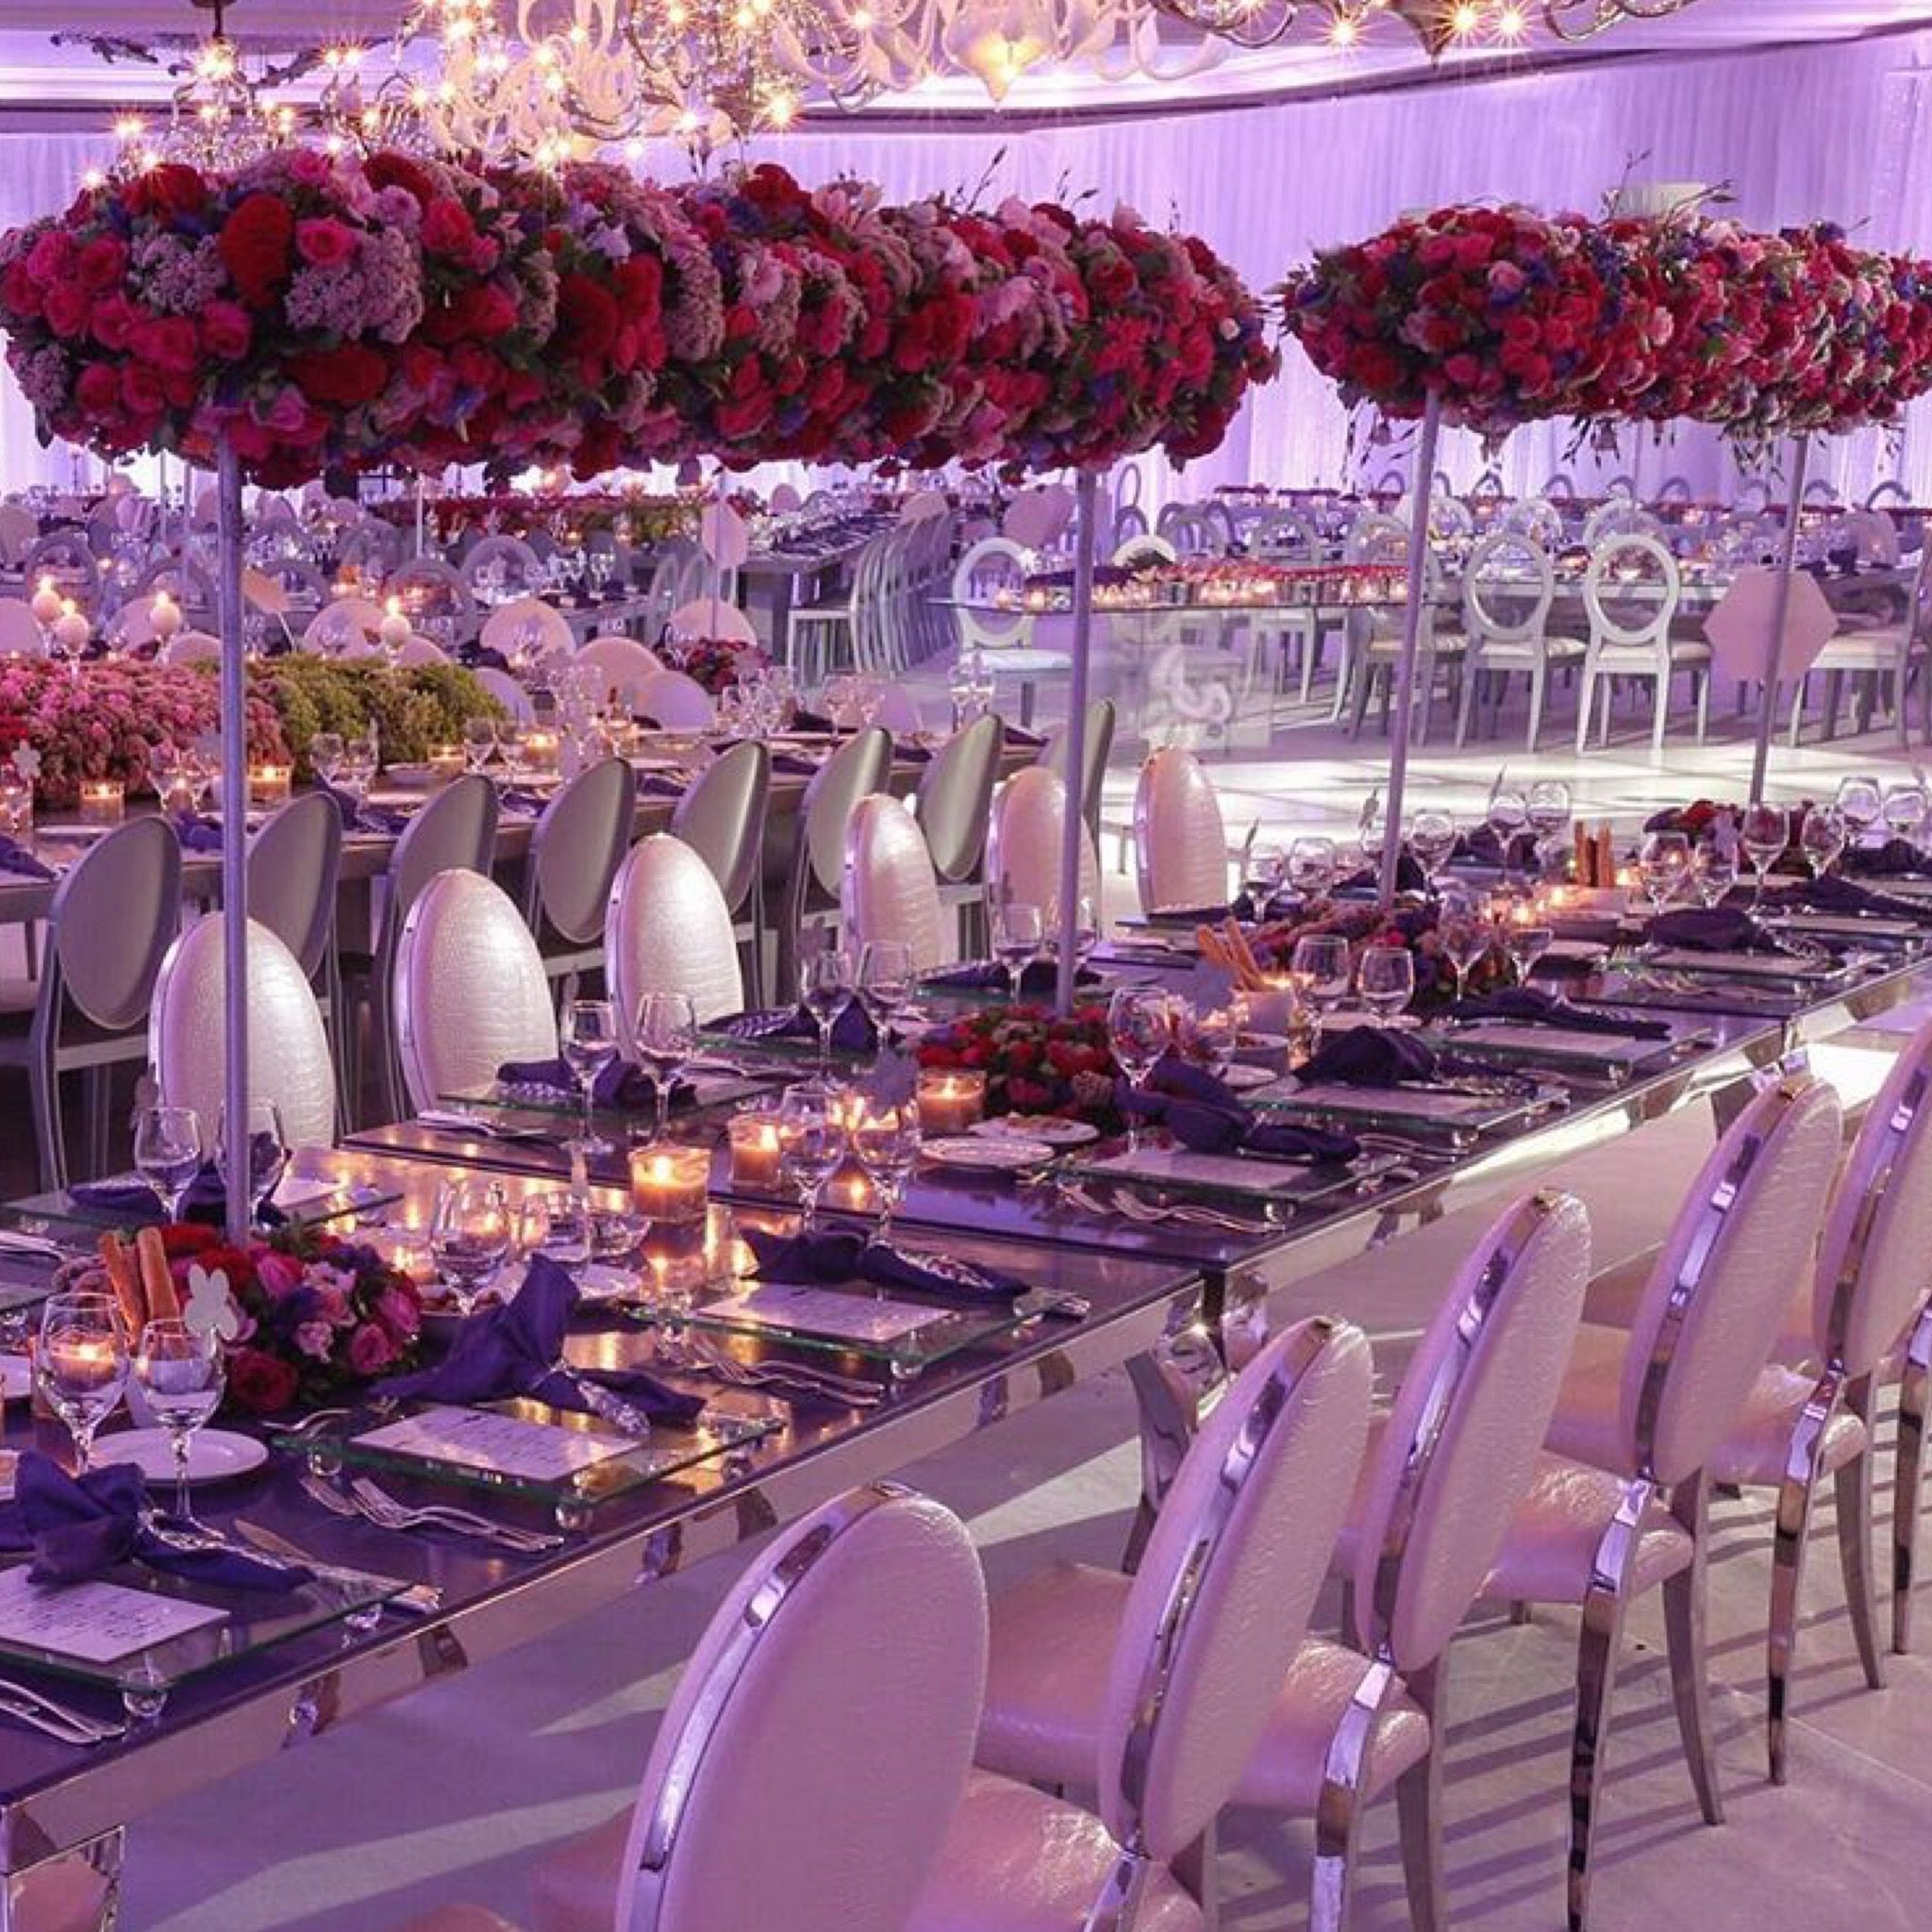 Luxury Wedding Reception With A Perfect And Awesome: Romantic, Elegant And Dreamy...💞